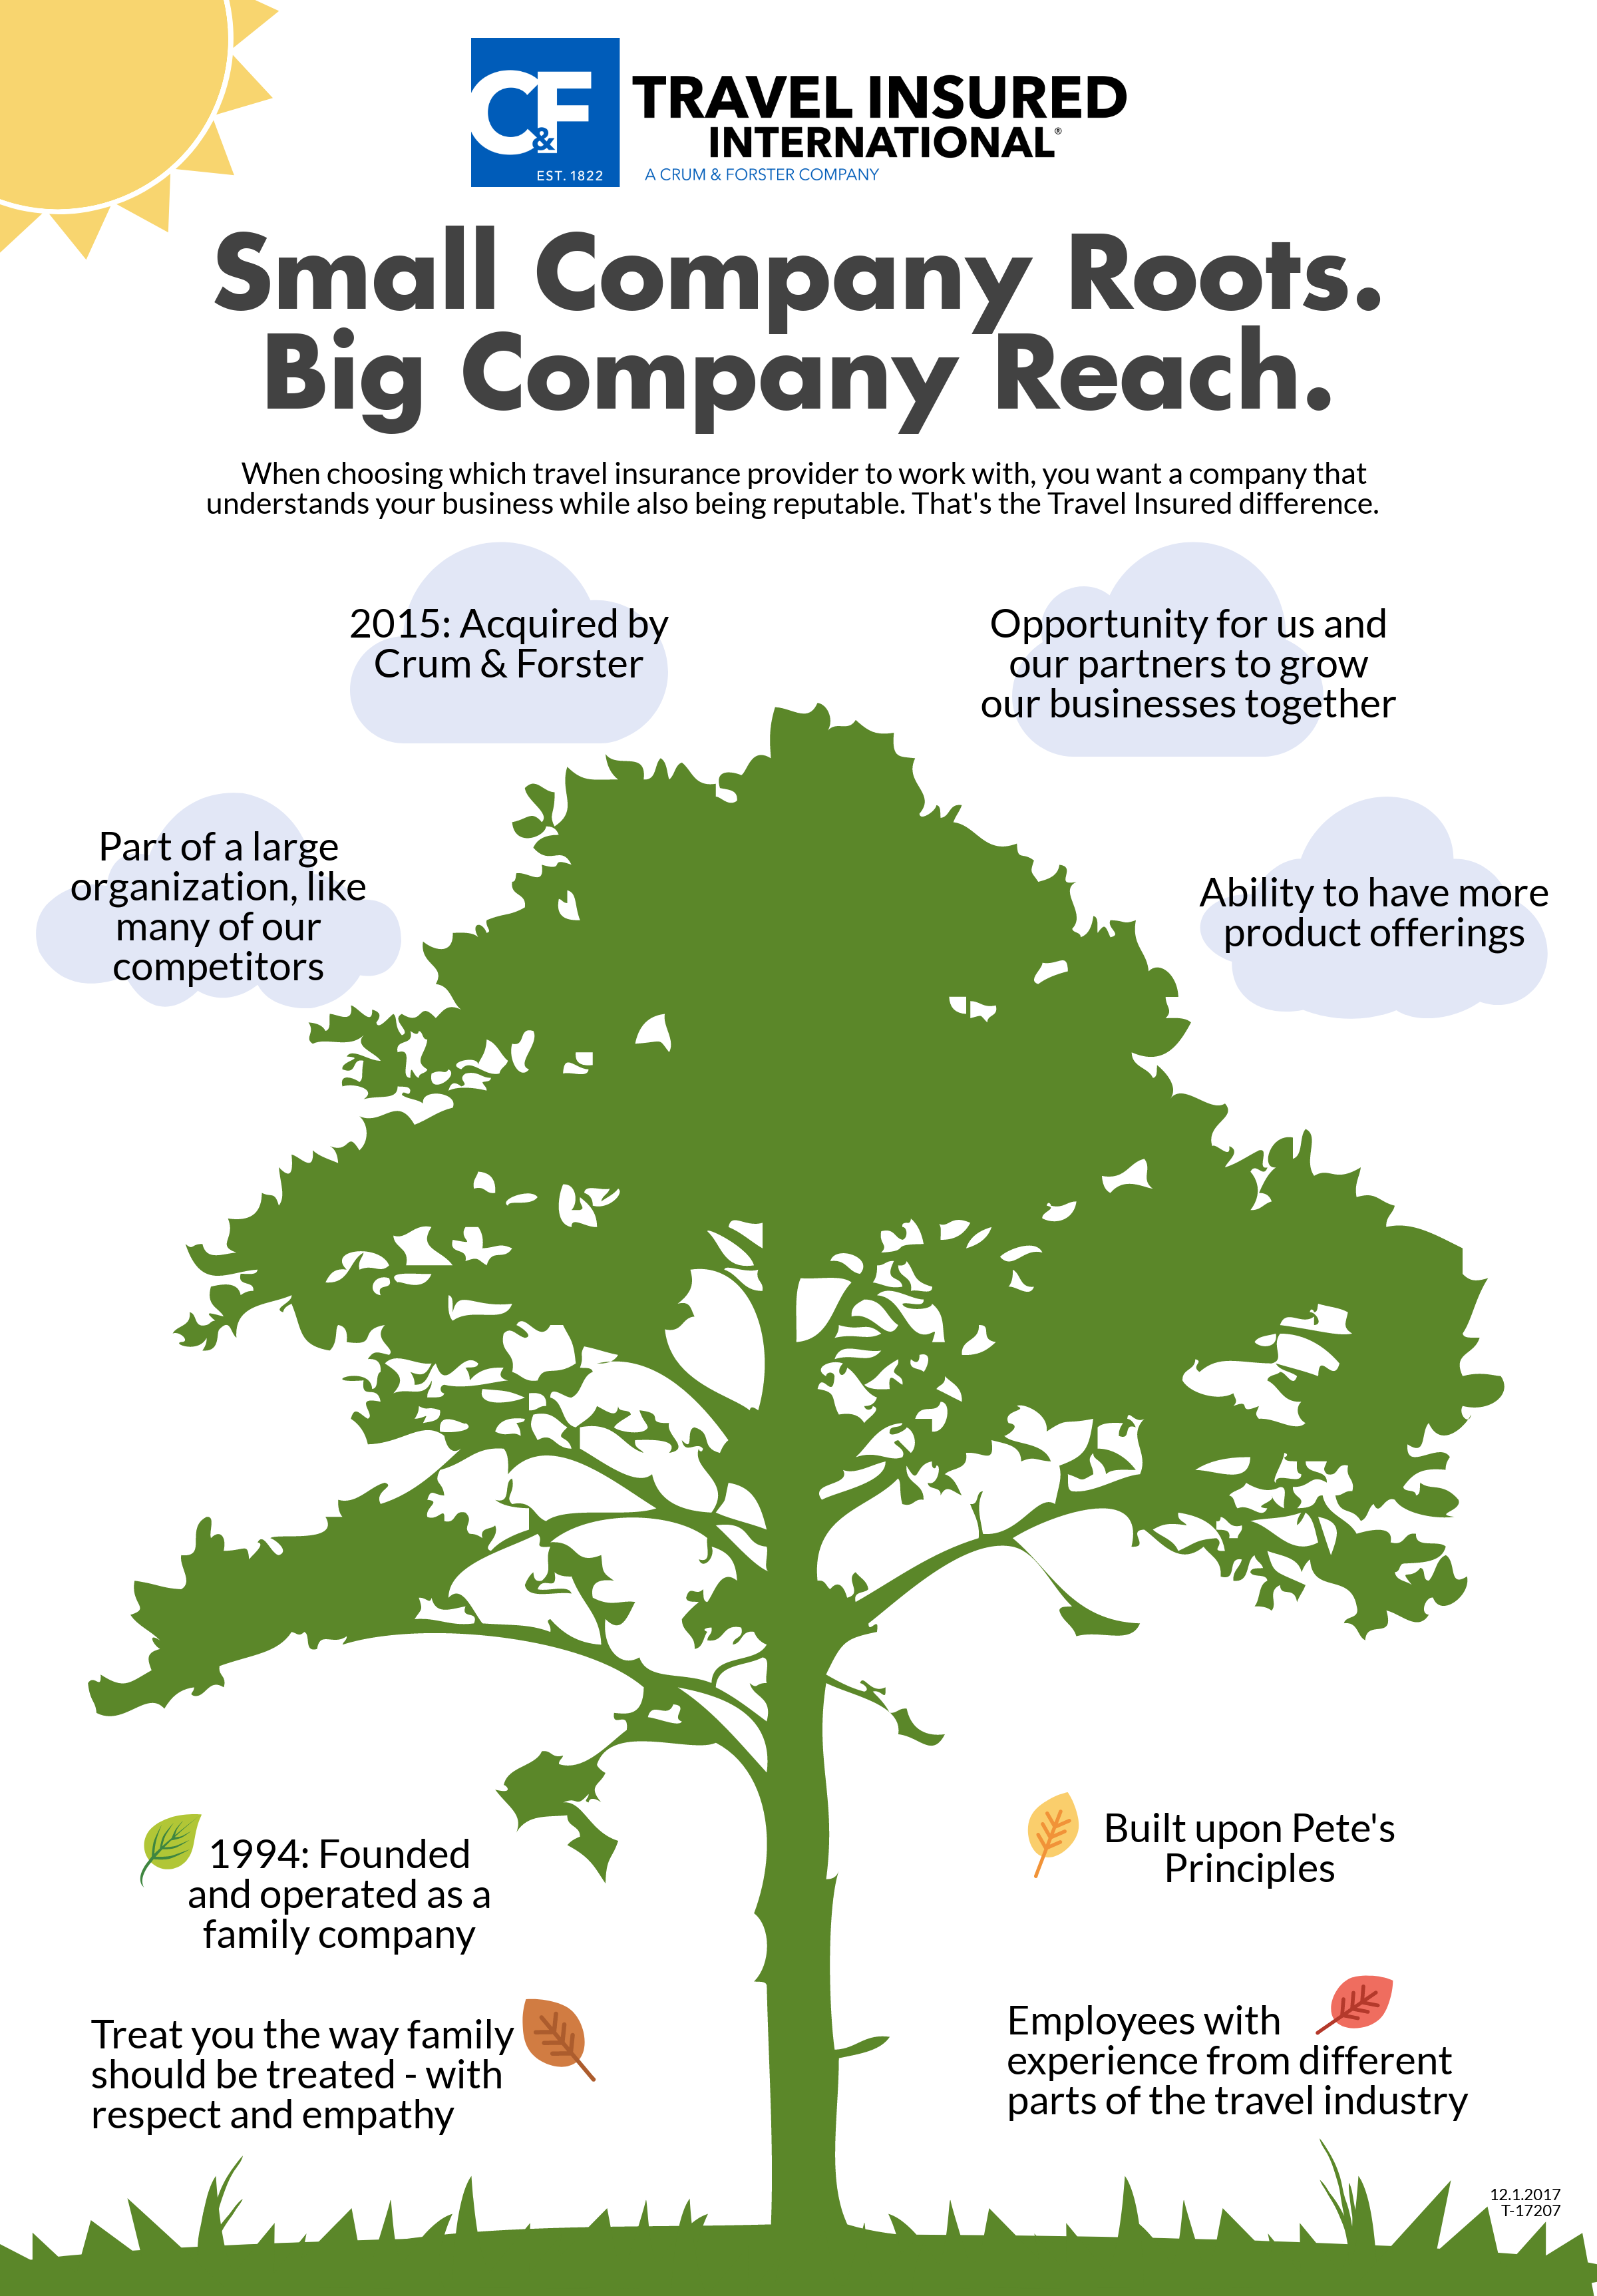 Small Company Roots. Big Company Reach.